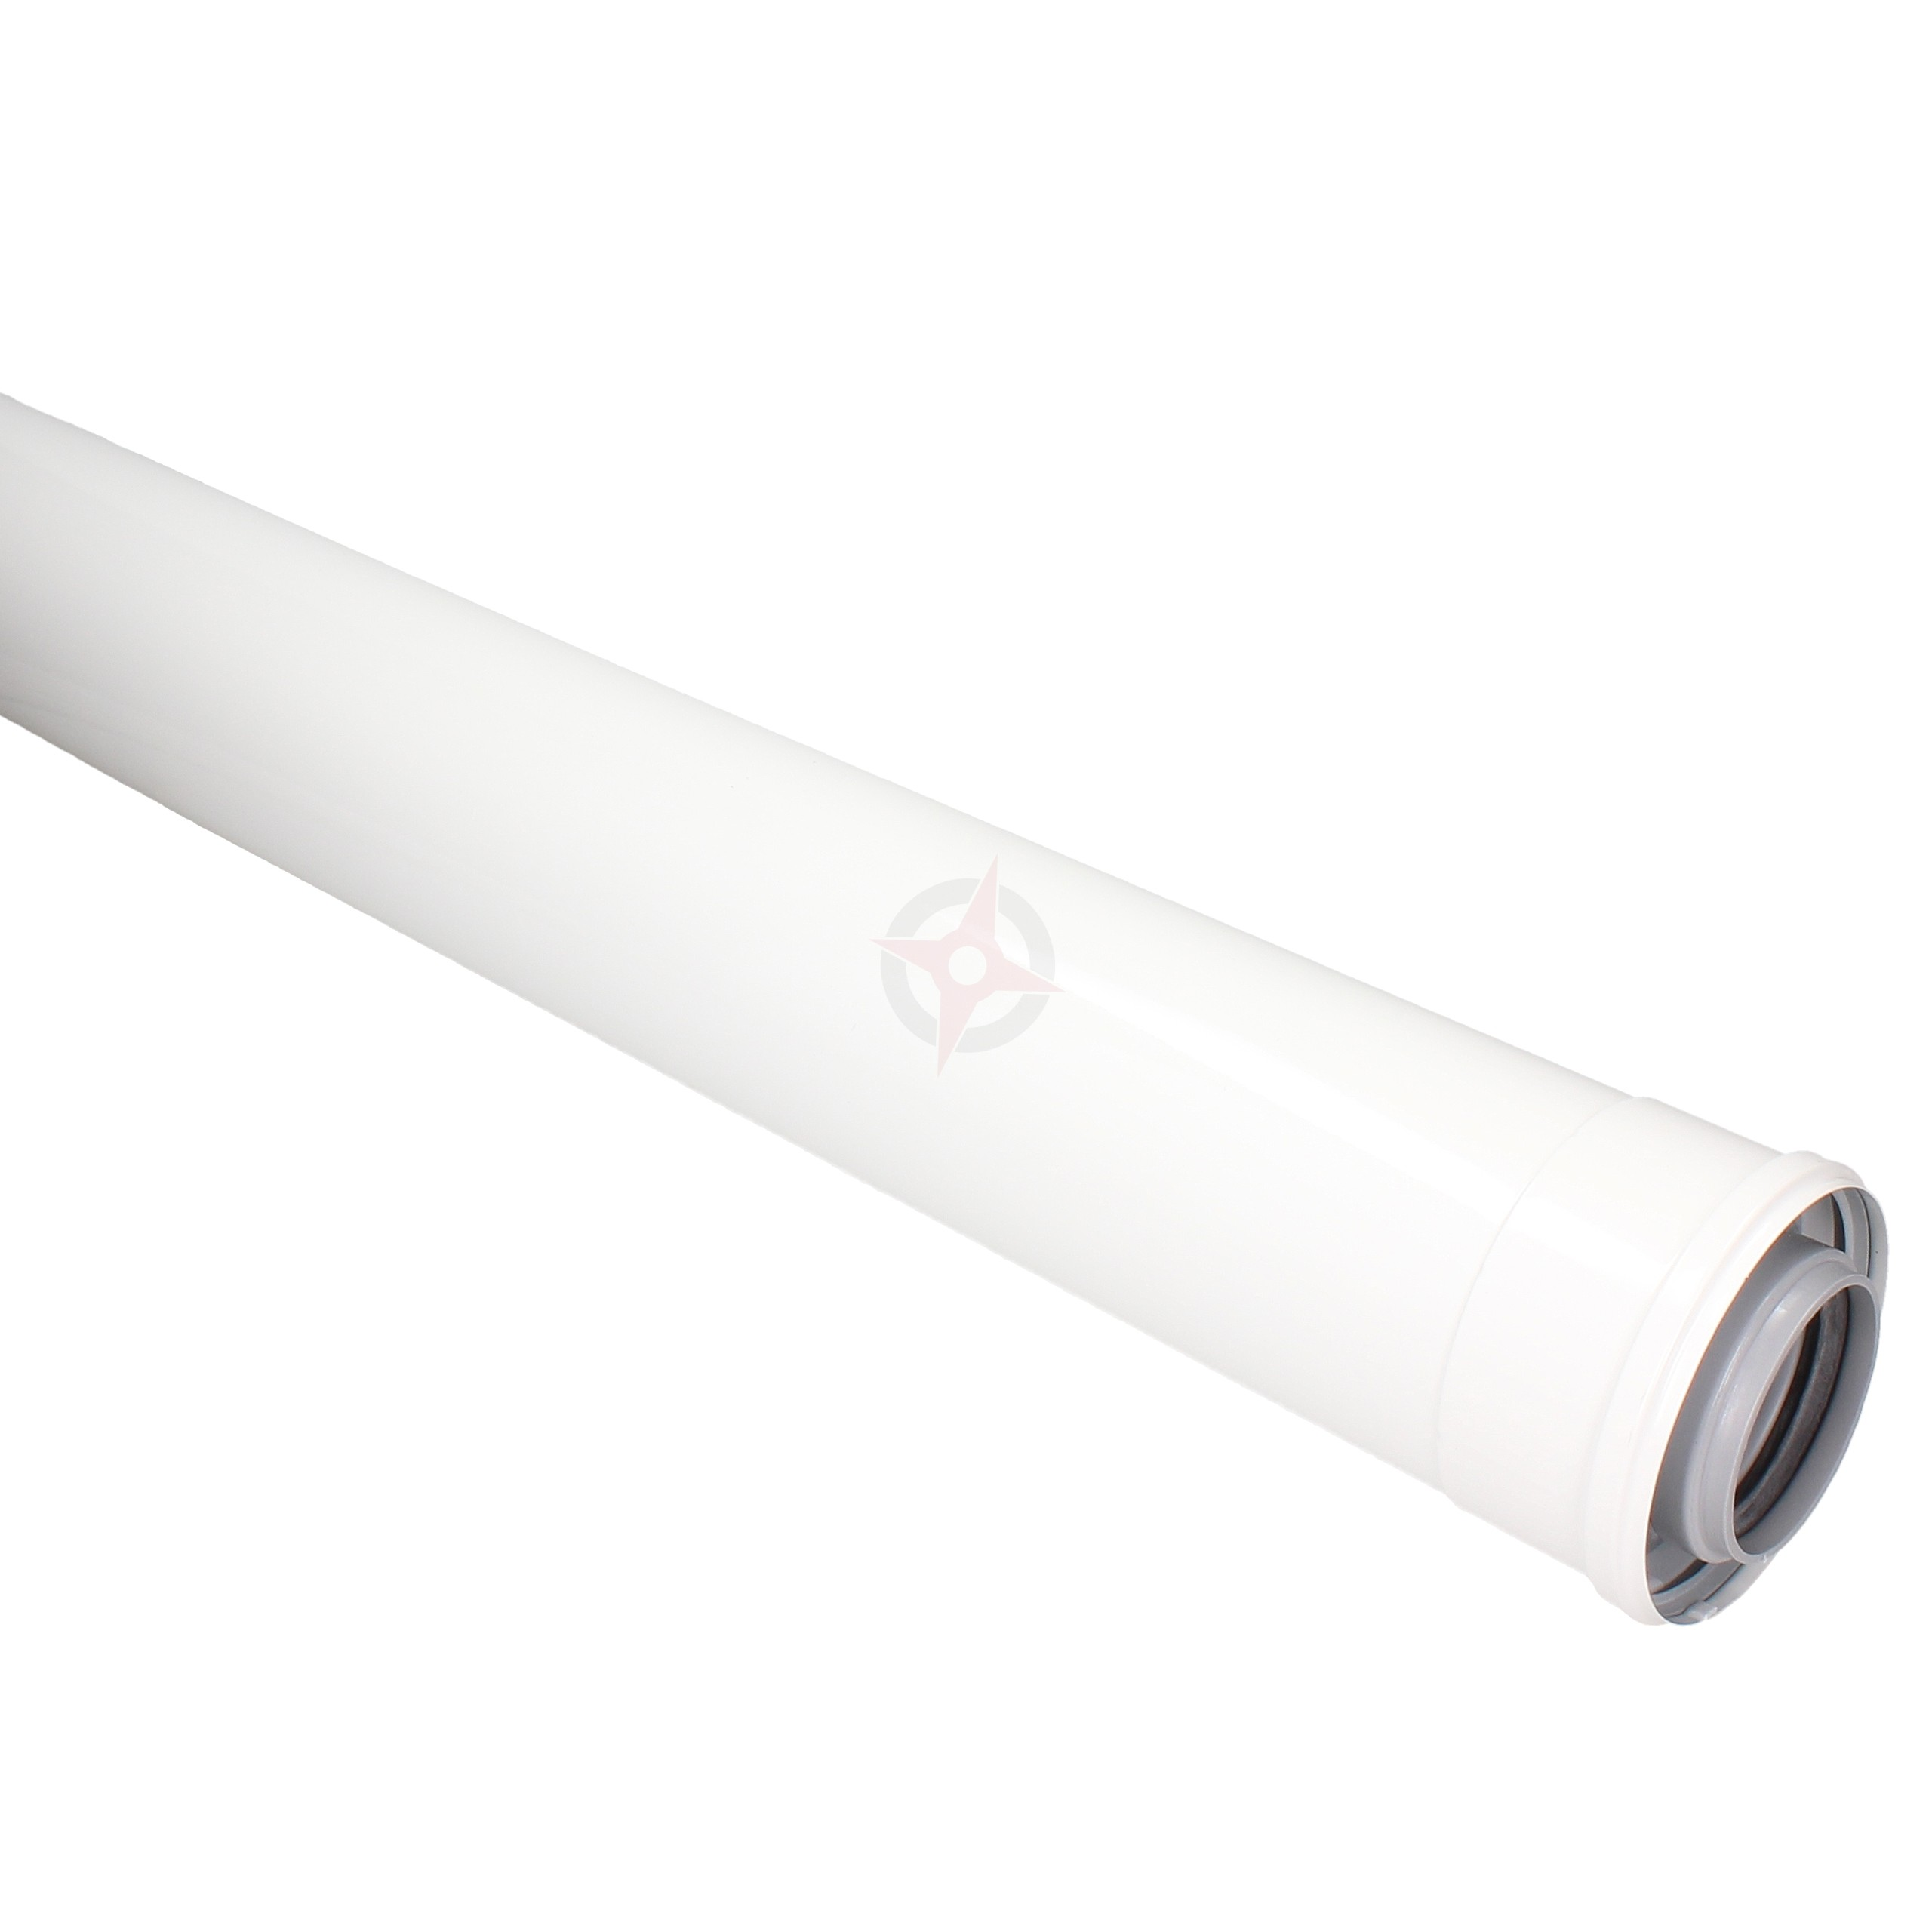 Ideal Pack D 1 Metre Flue Extension